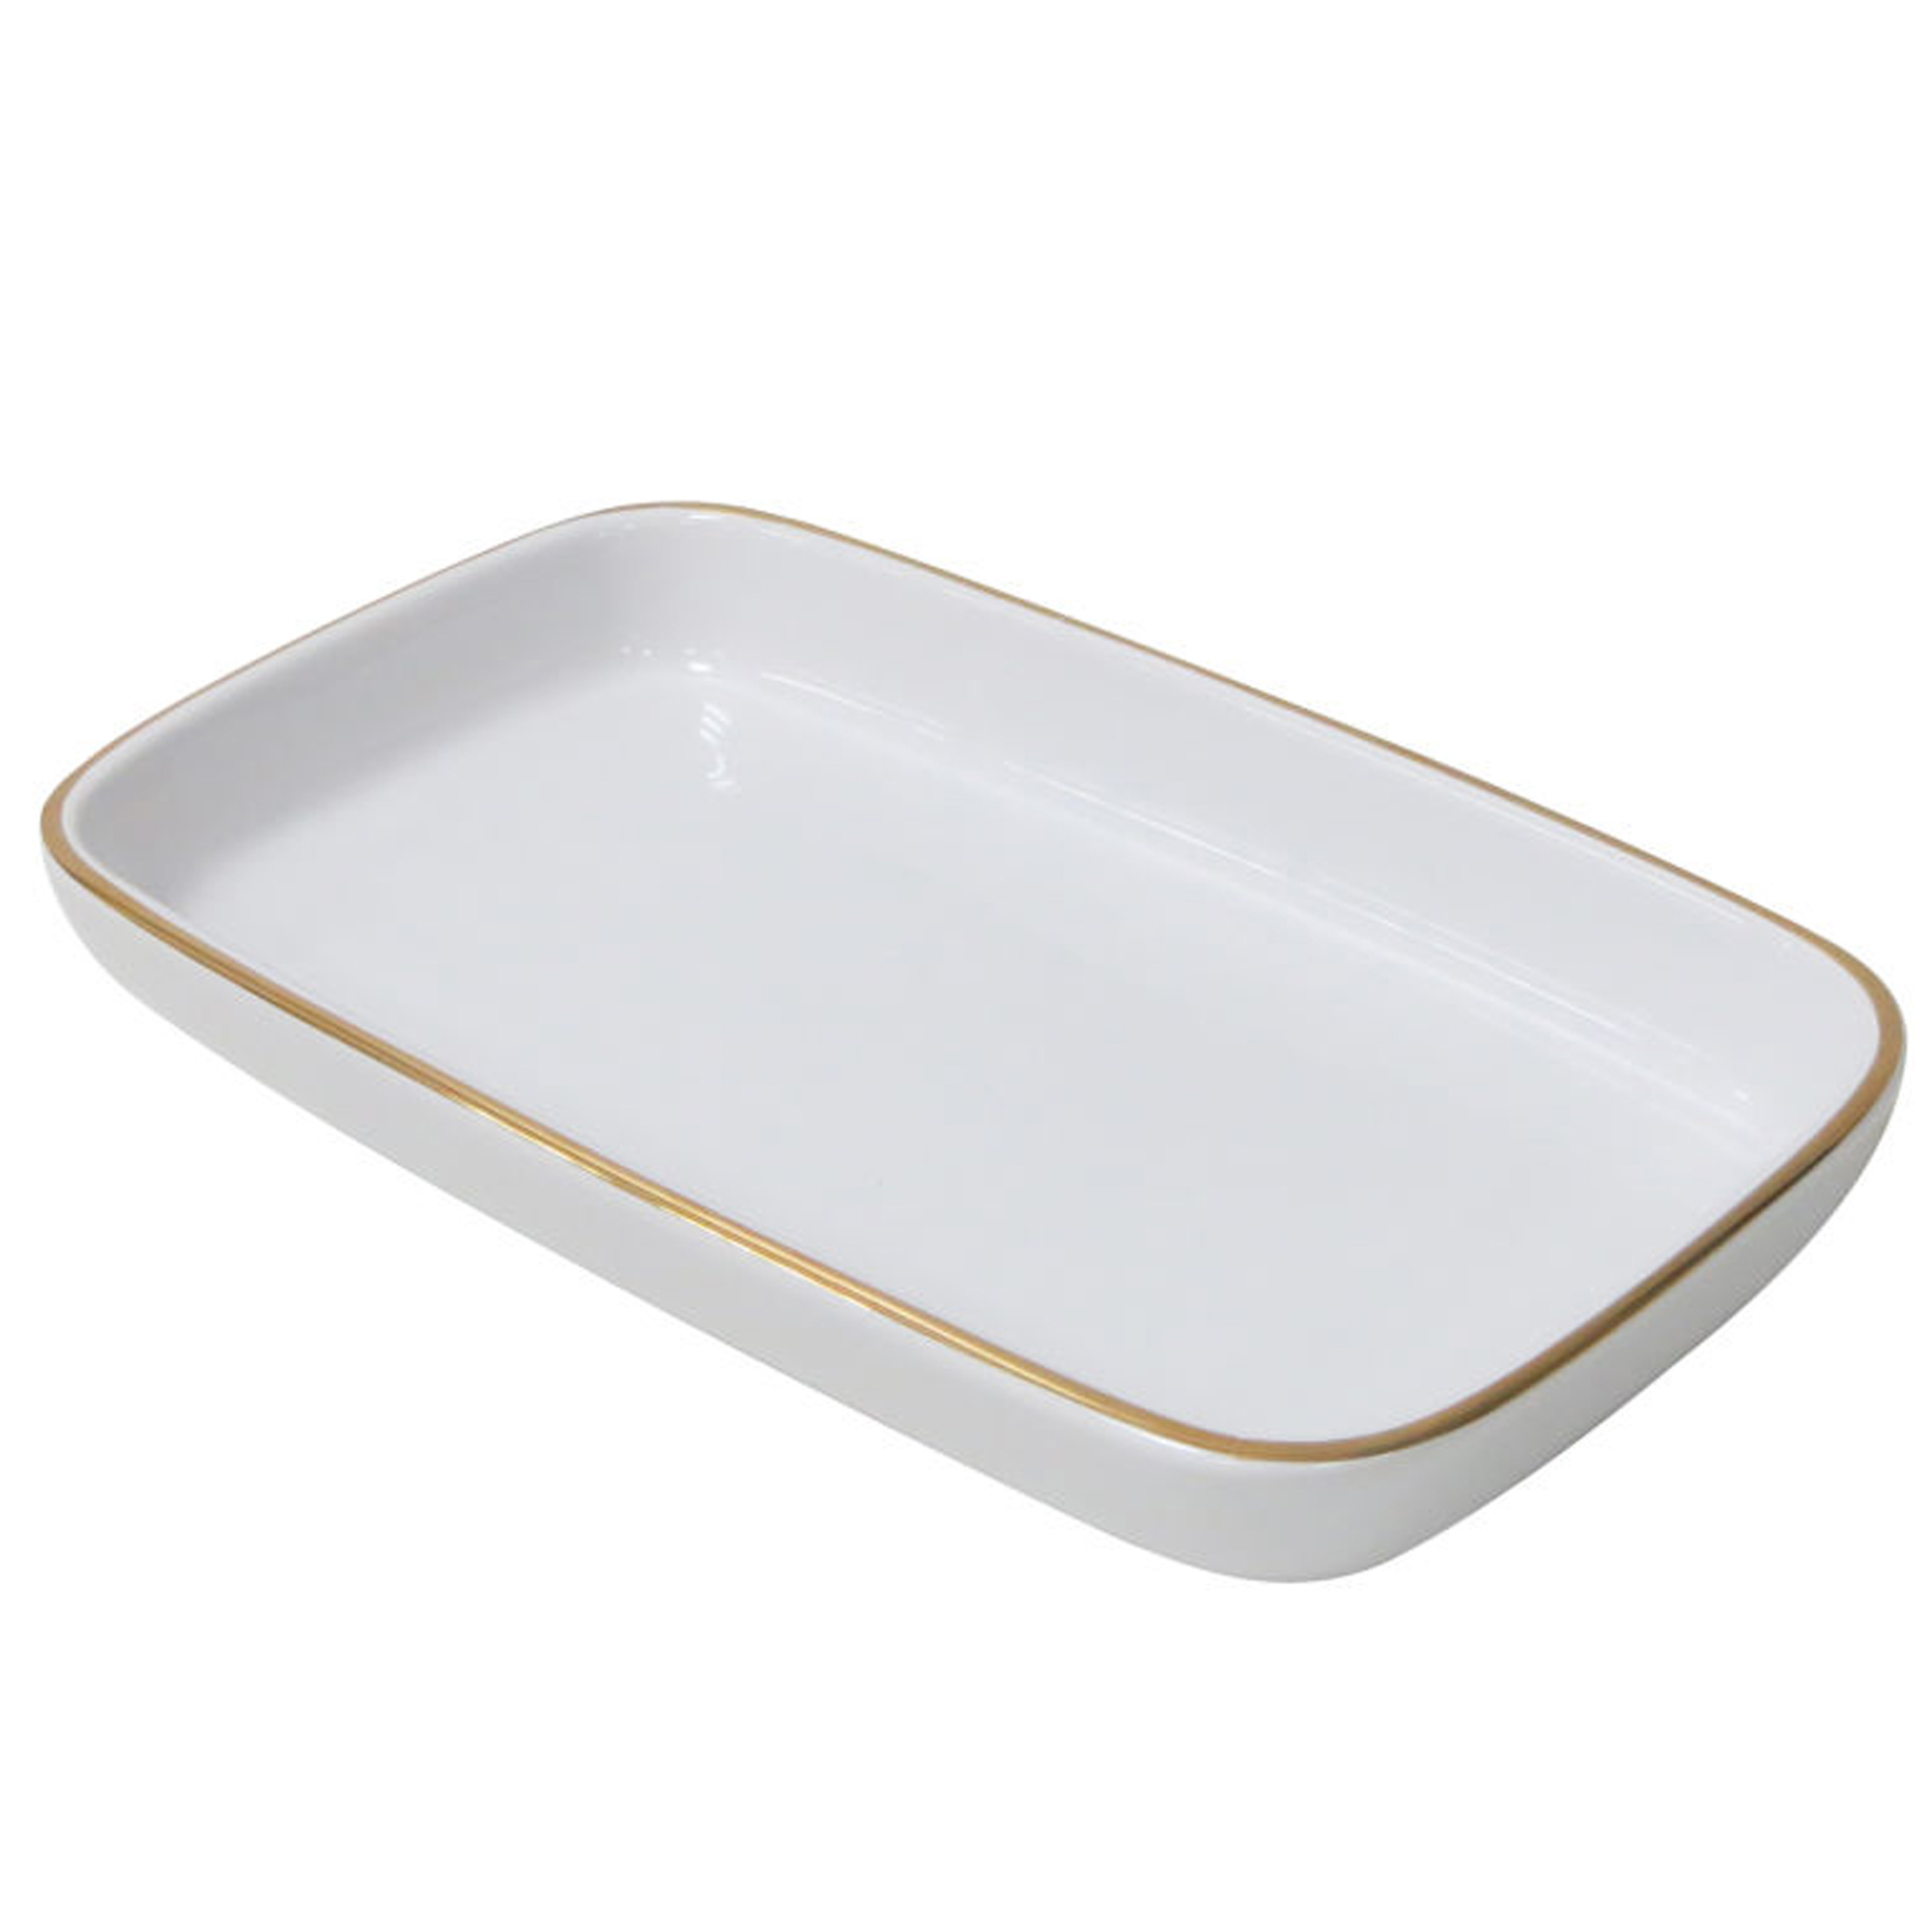 Better Homes and Gardens Gold White Tray